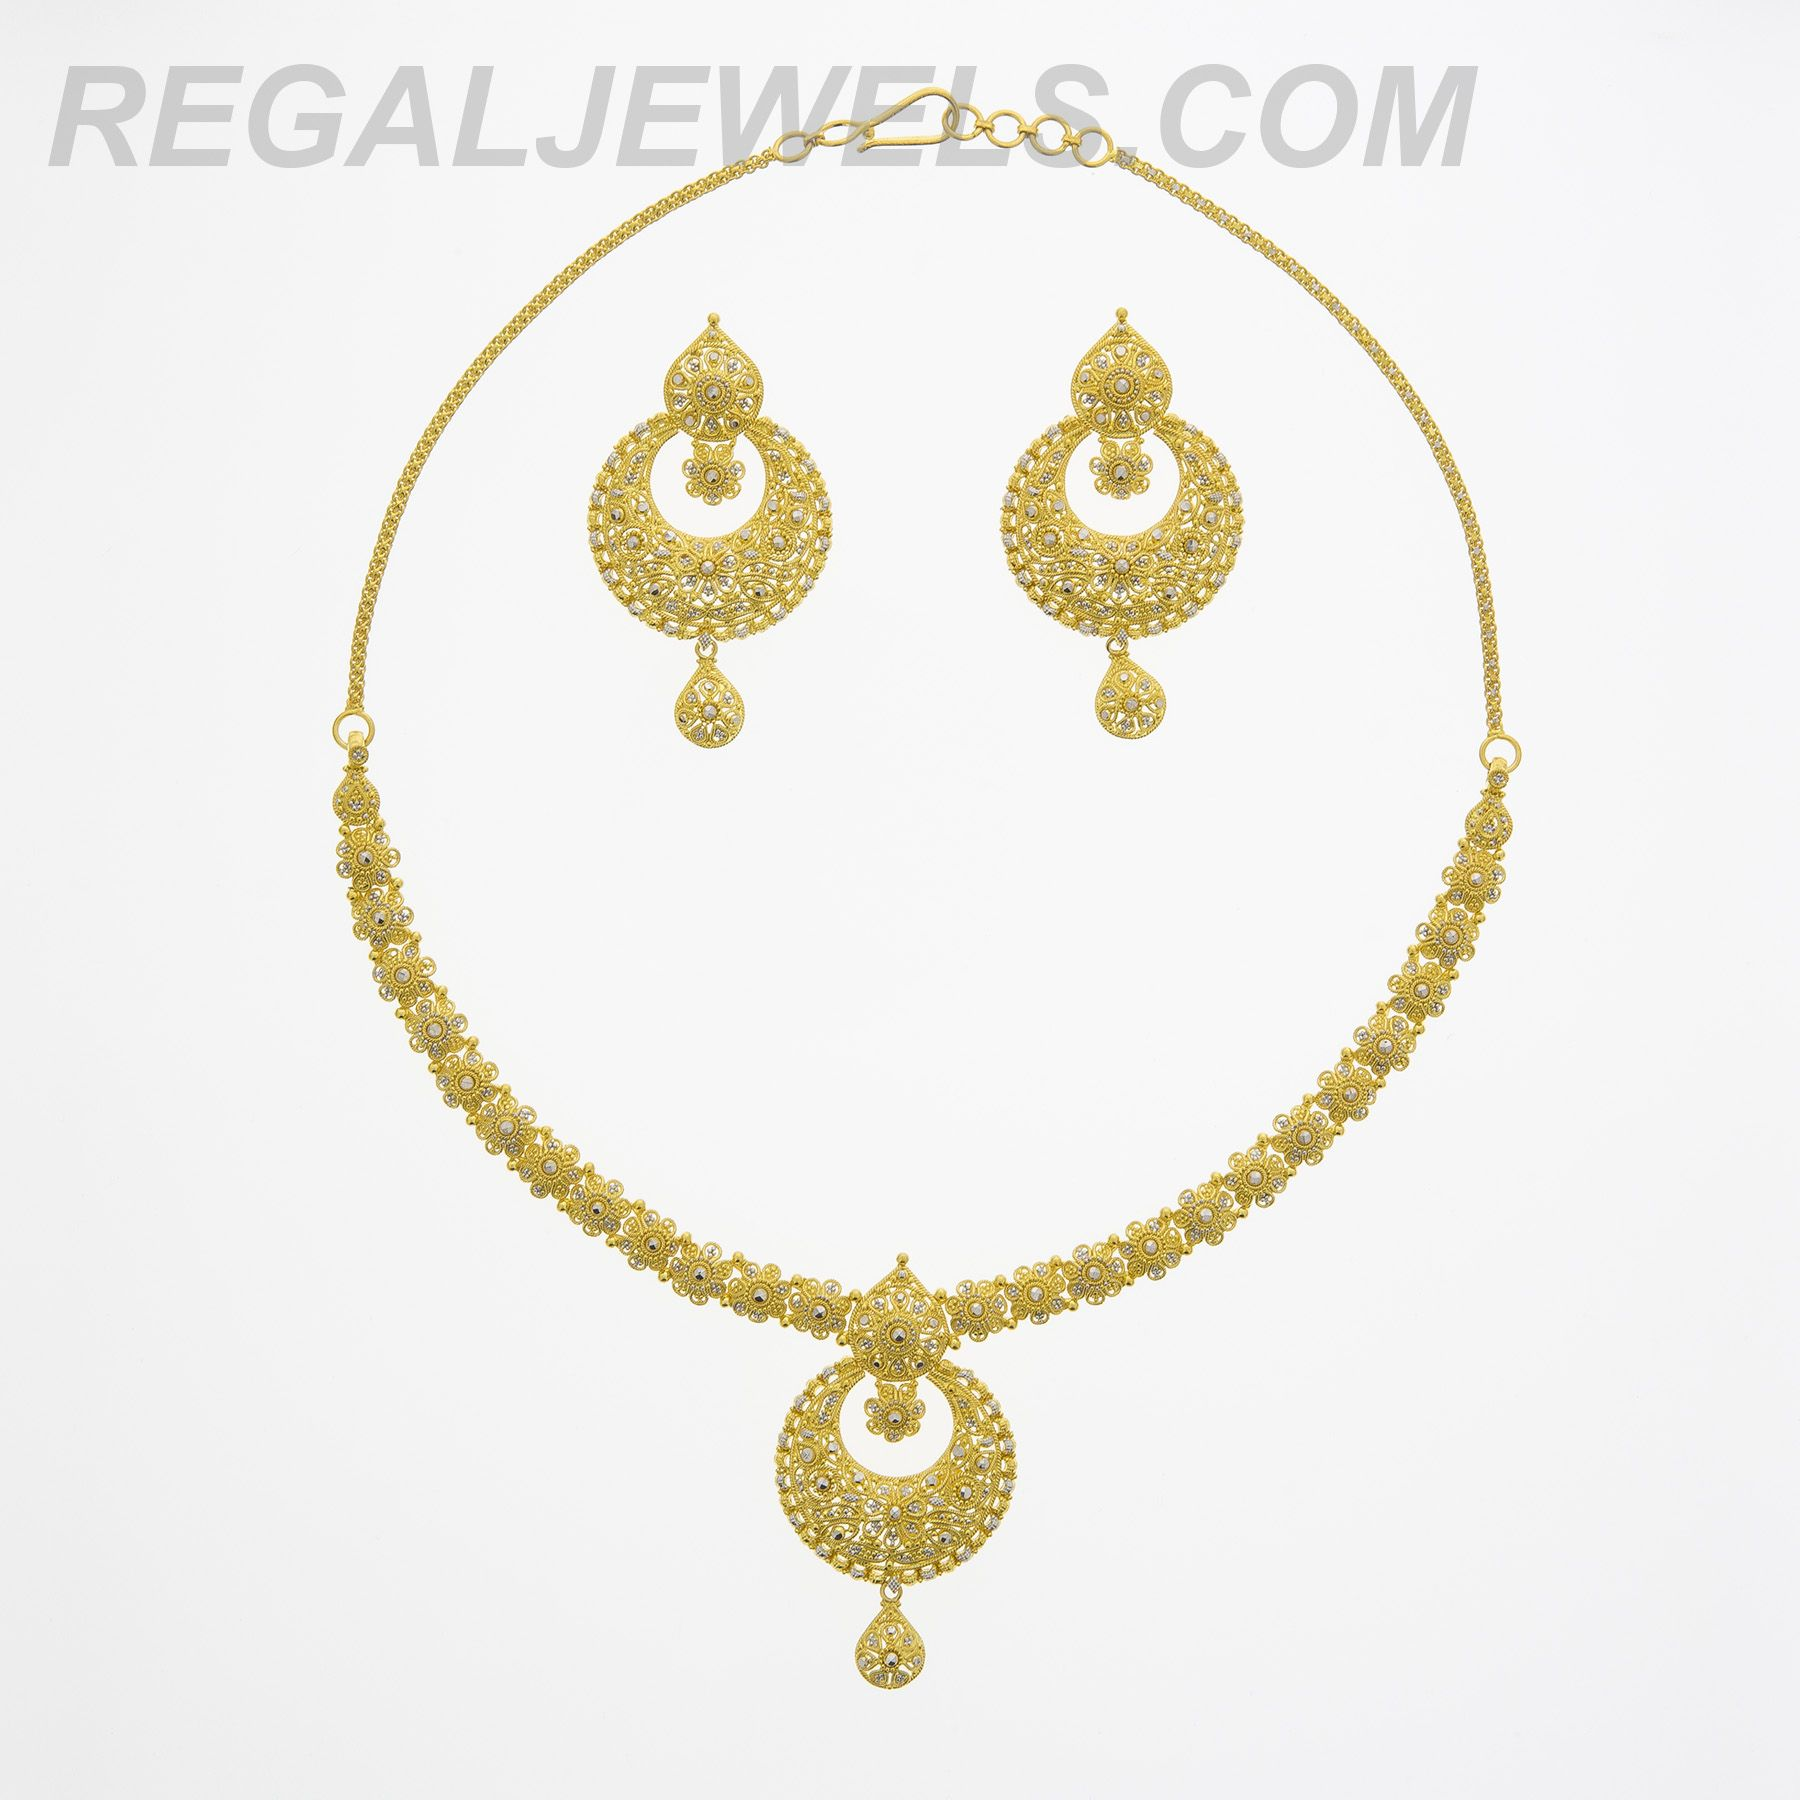 Regal Jewels Online - 22KT Gold Filigree with Rhodium Accents ...